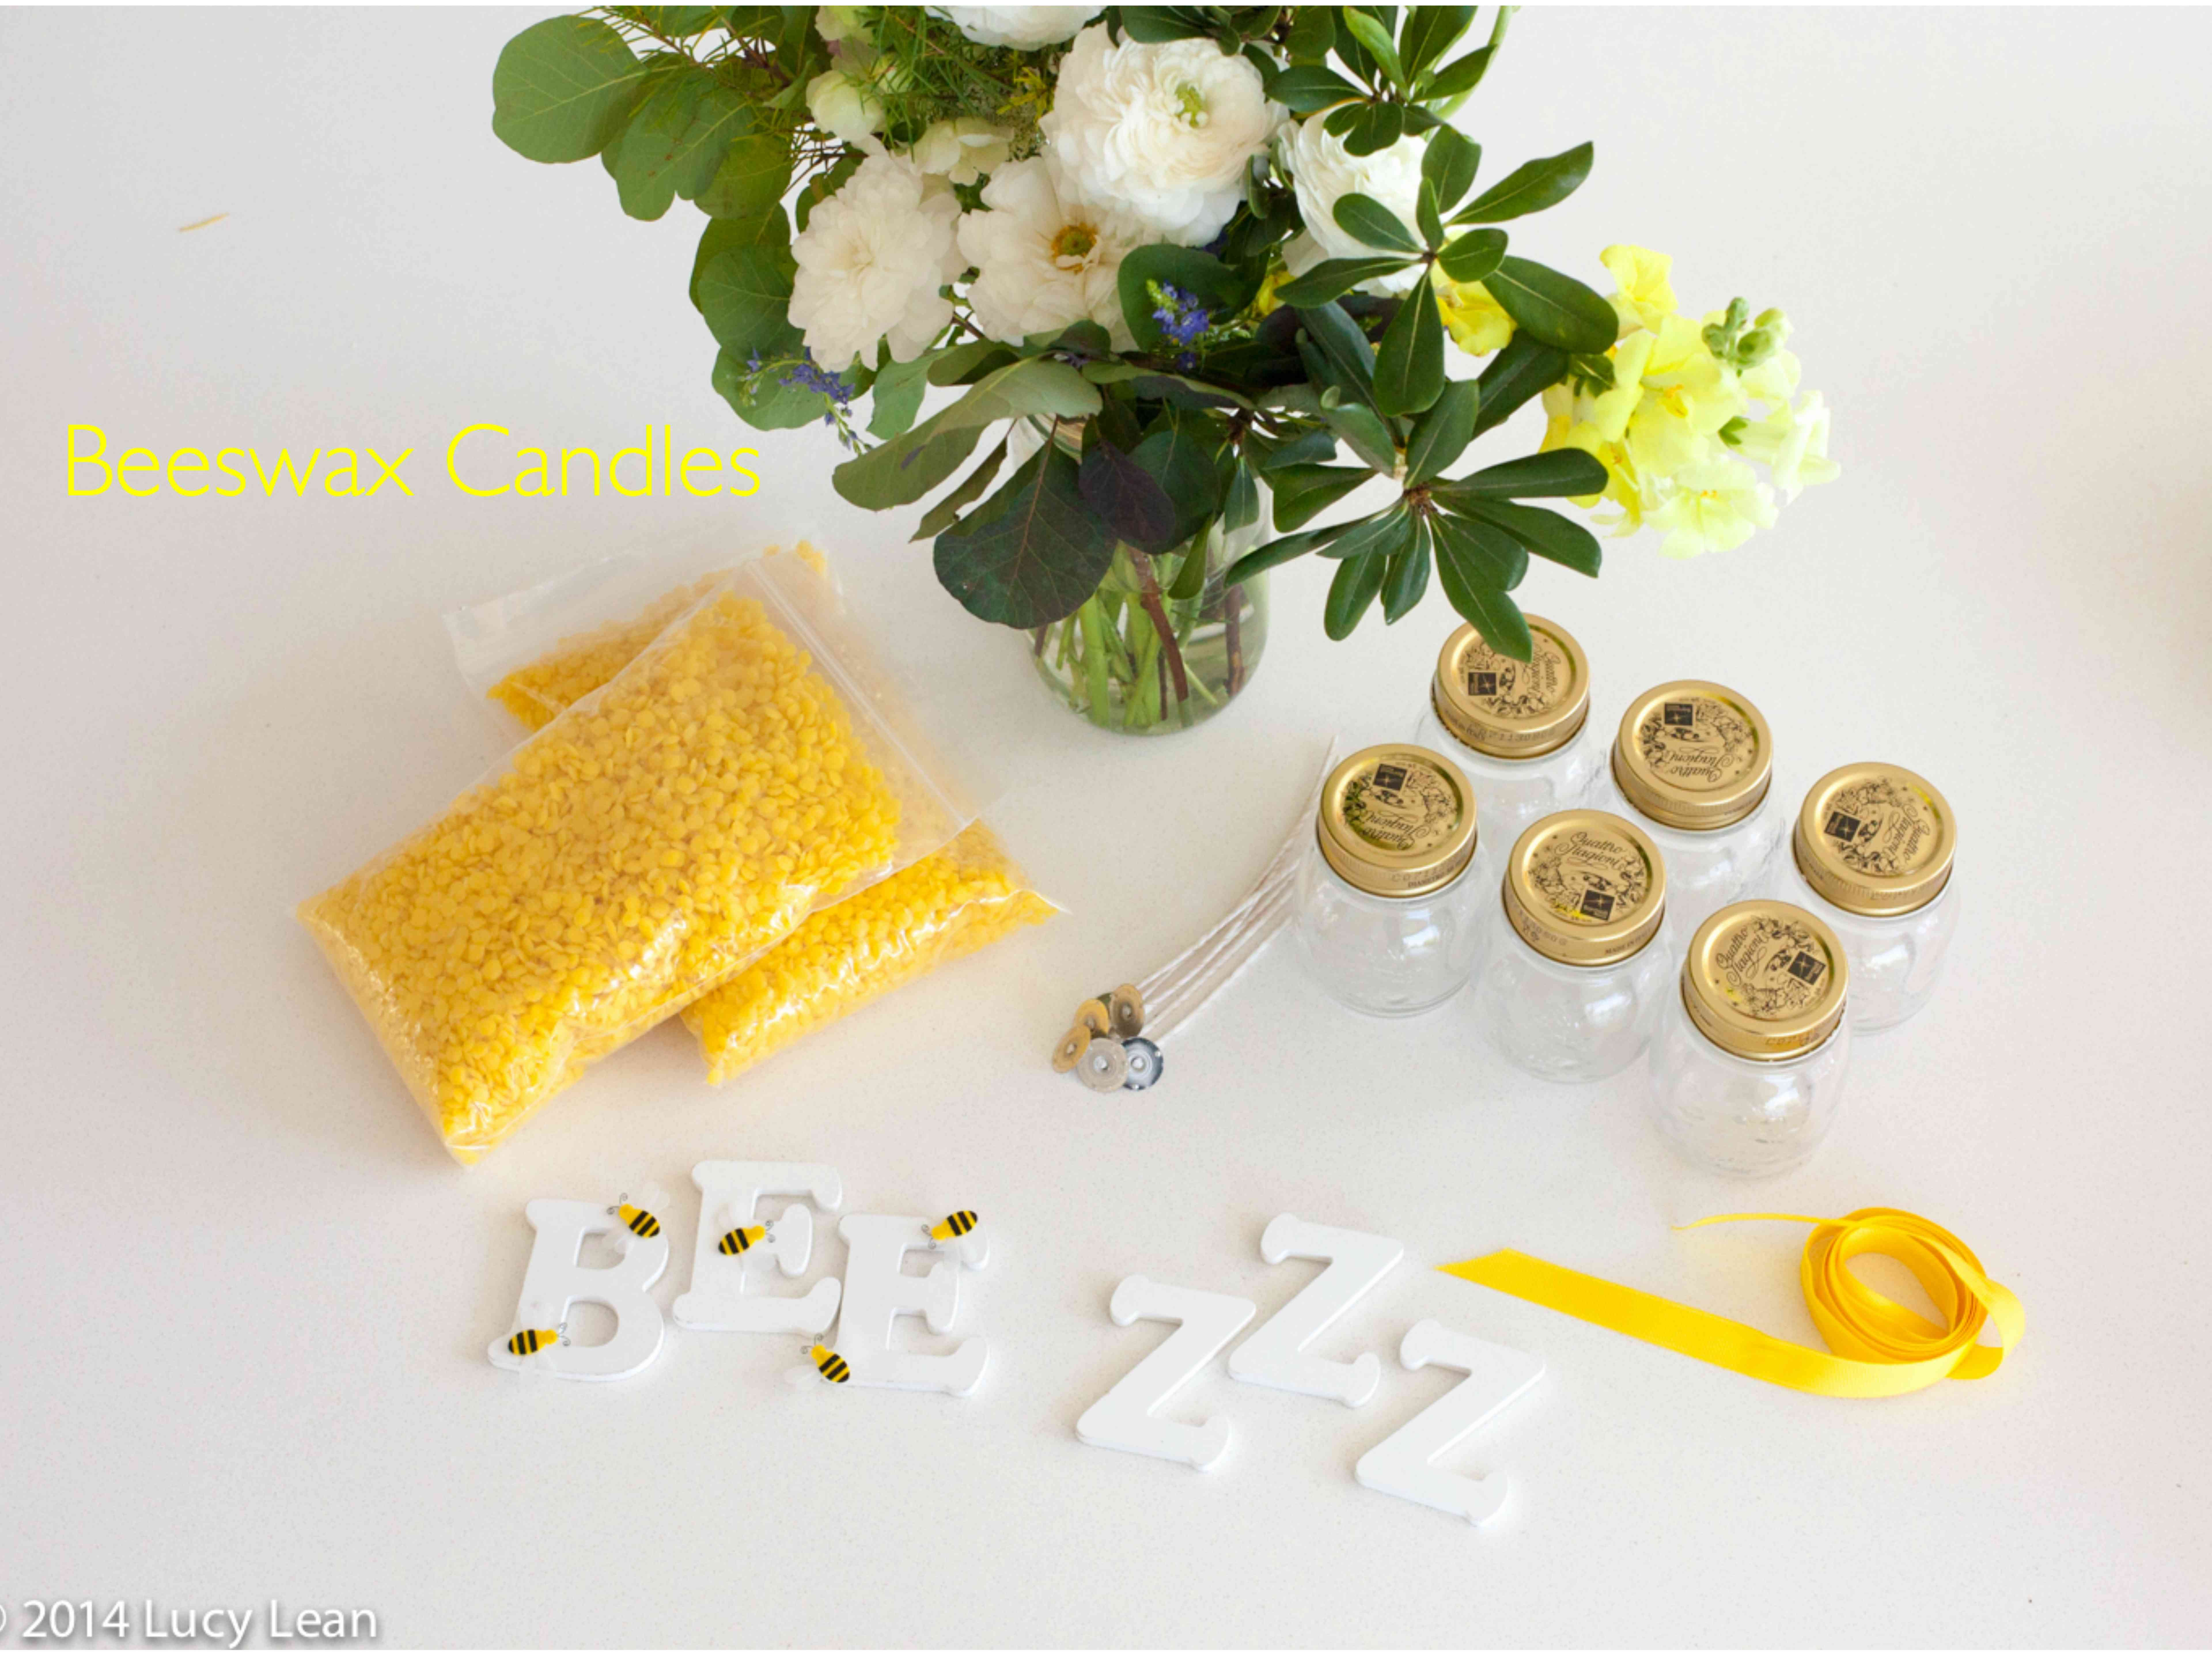 Beeswax candlemaking